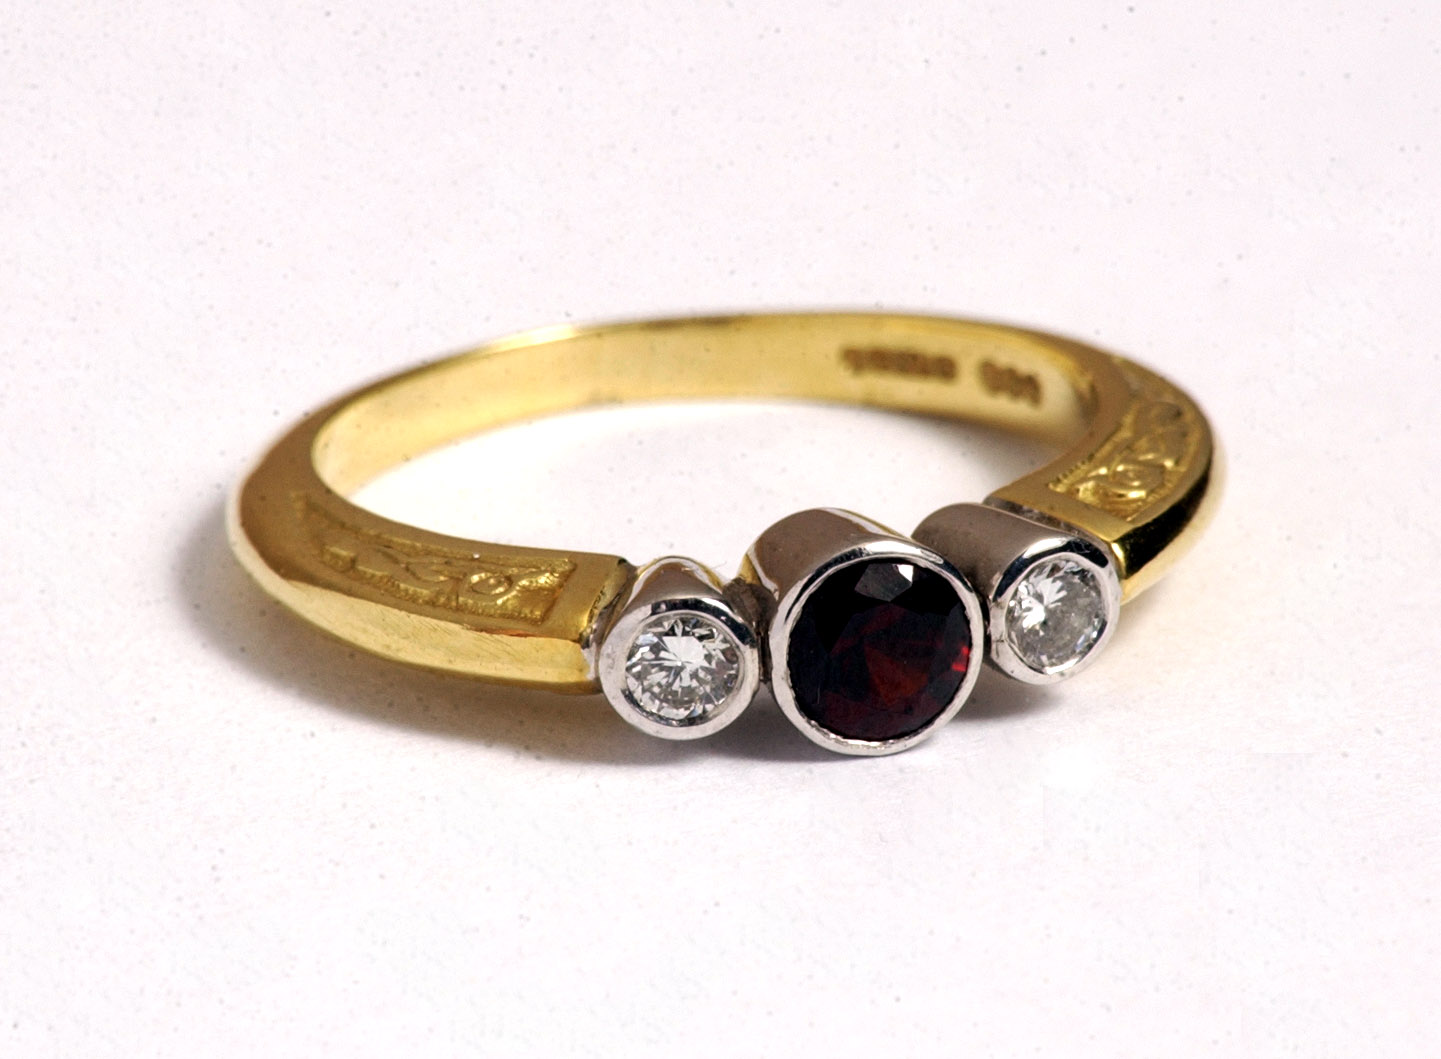 An engagement ring set with a rare Scottish Elie Ruby. PR photography